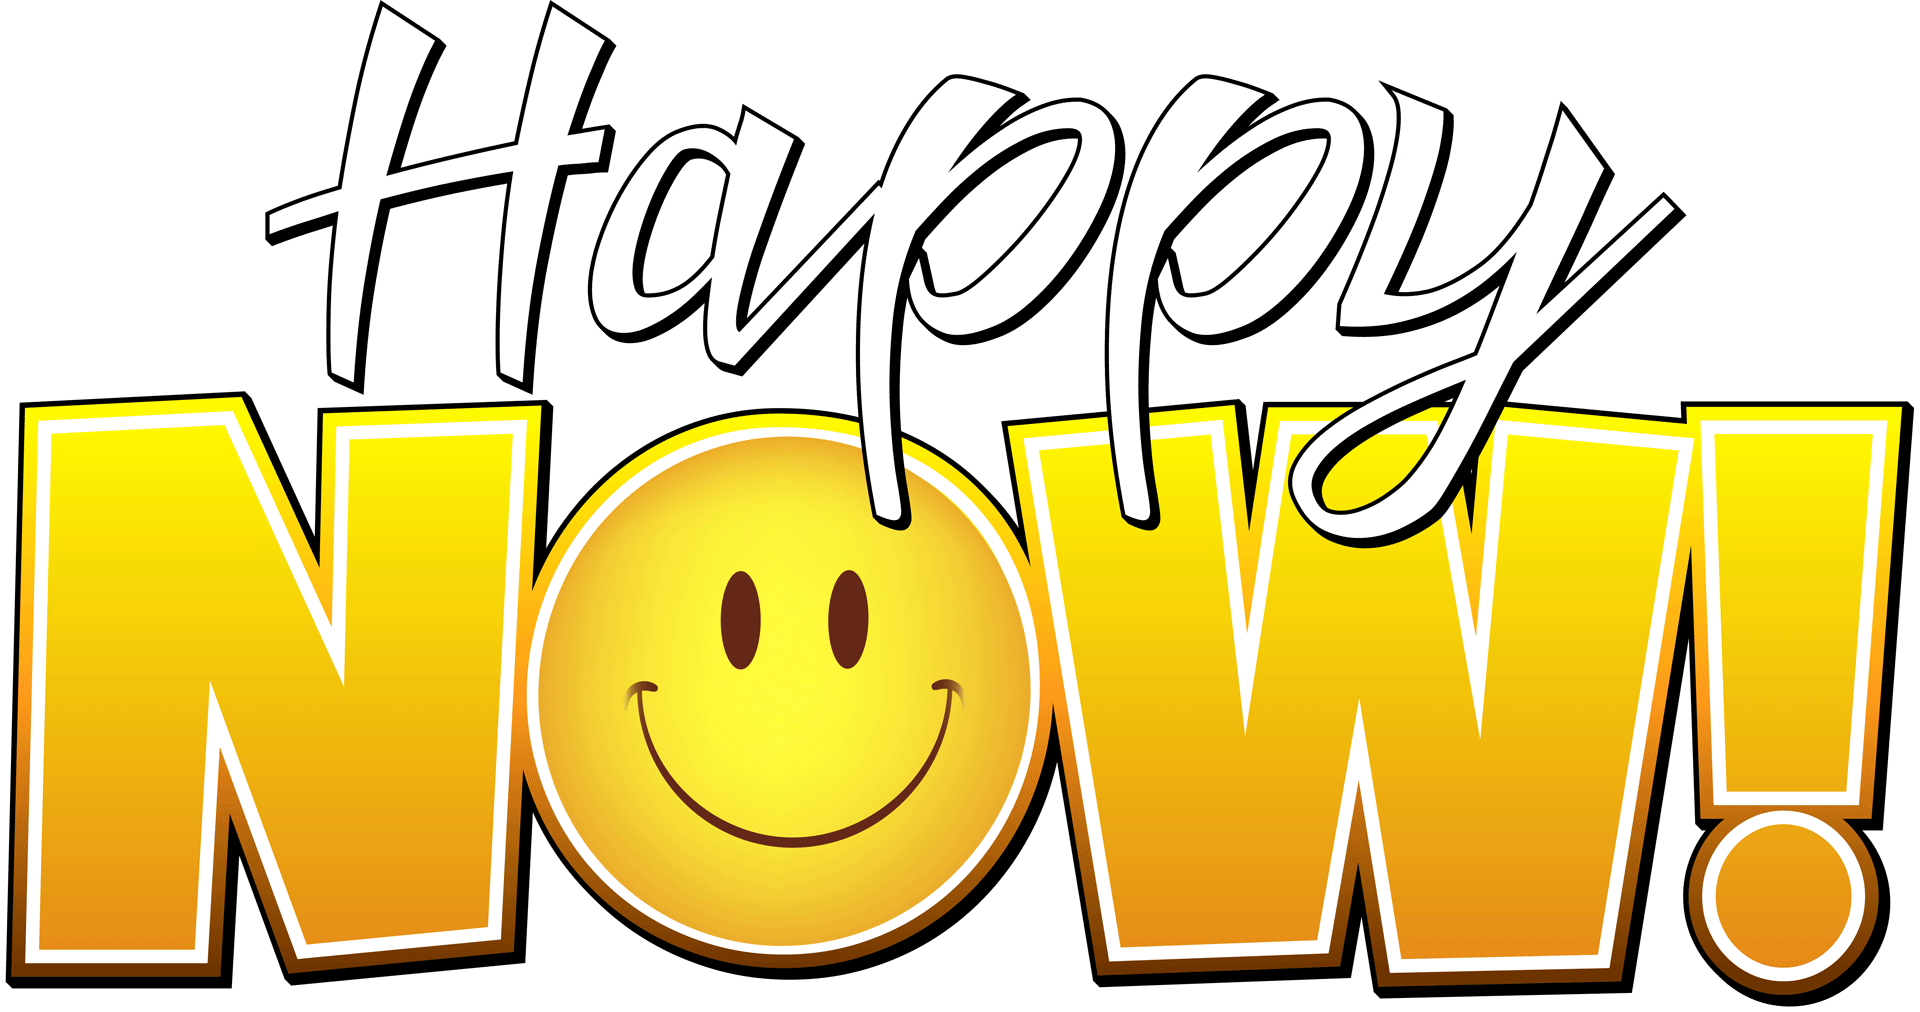 Sign up for Happy Now!